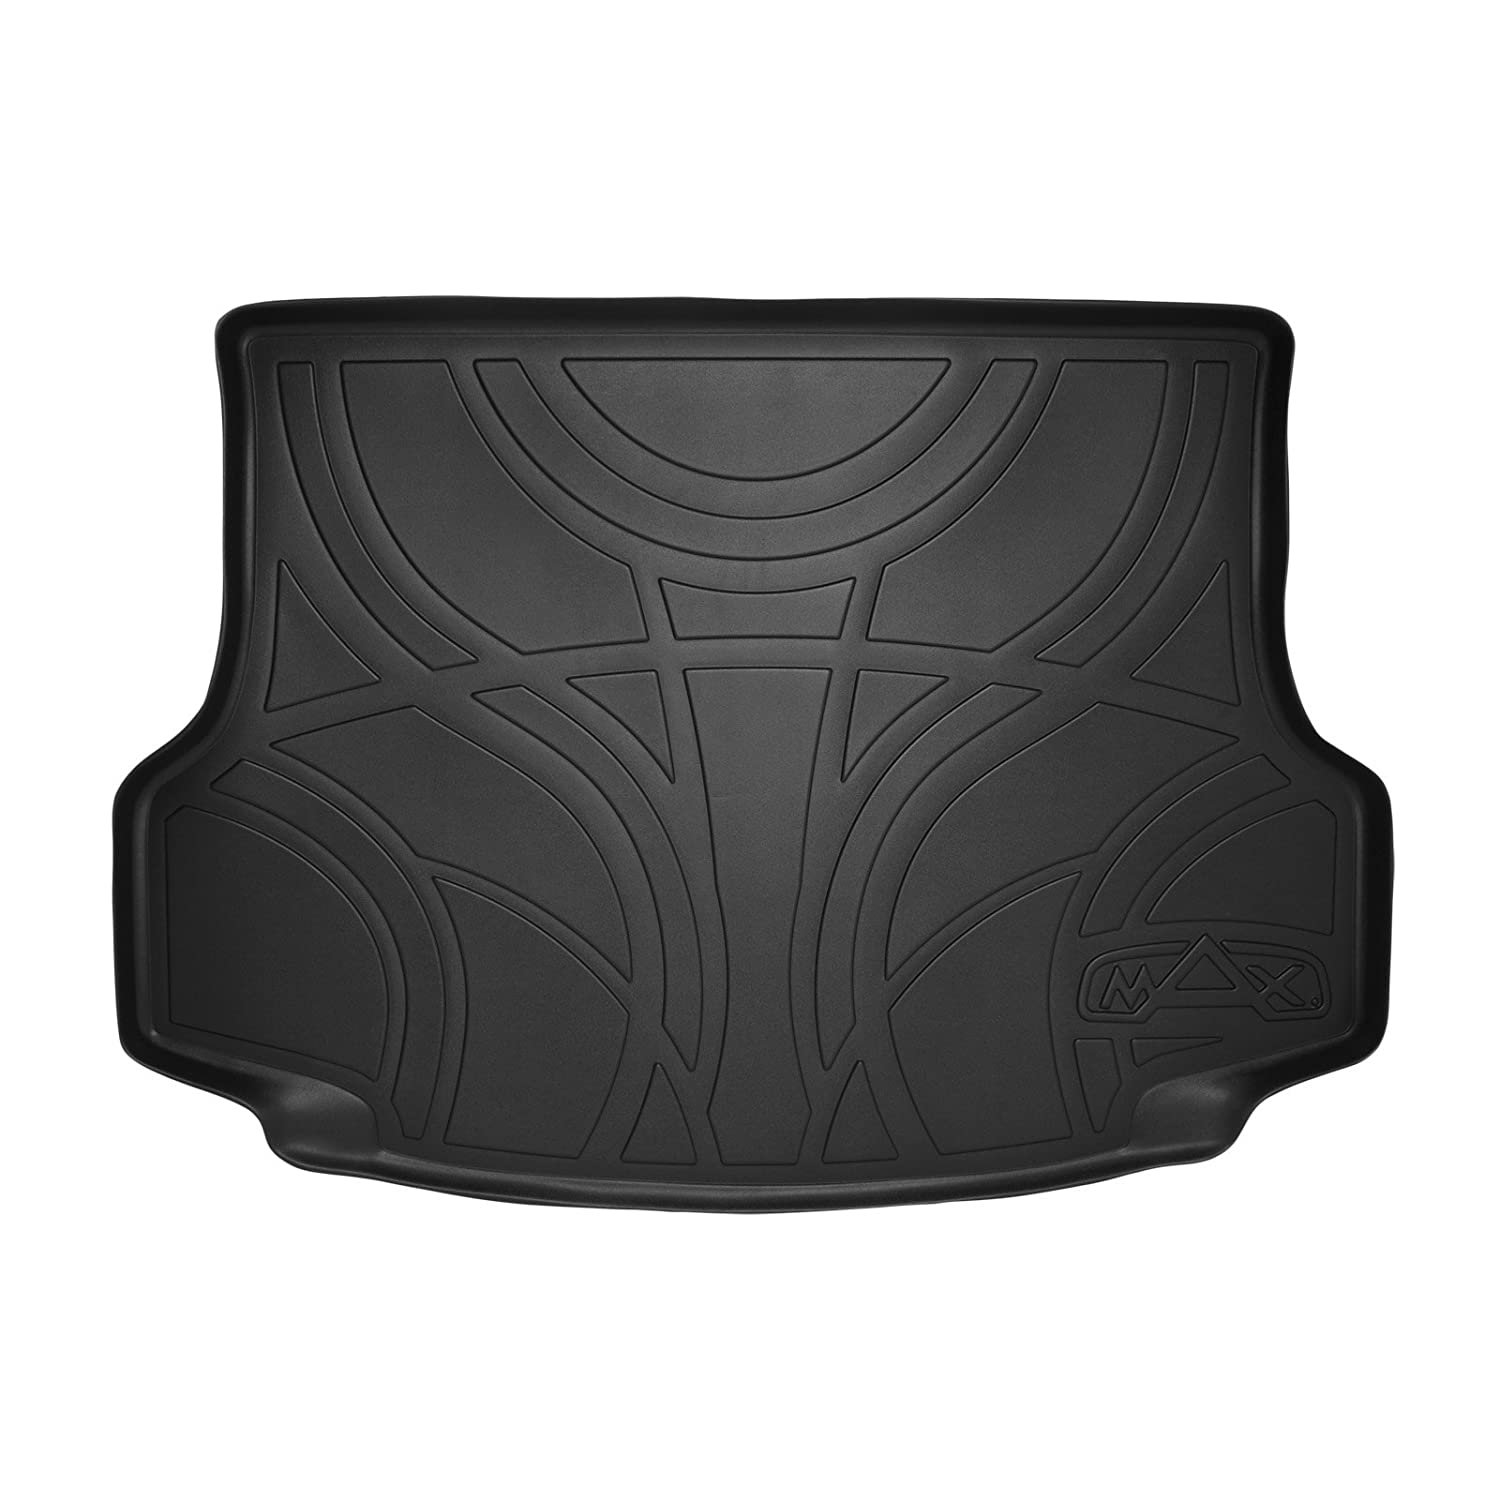 SMARTLINER All Weather Cargo Liner Floor Mat Black for 2013-2018 Toyota RAV4 (No EV Electric models) Maxliner USA D0134